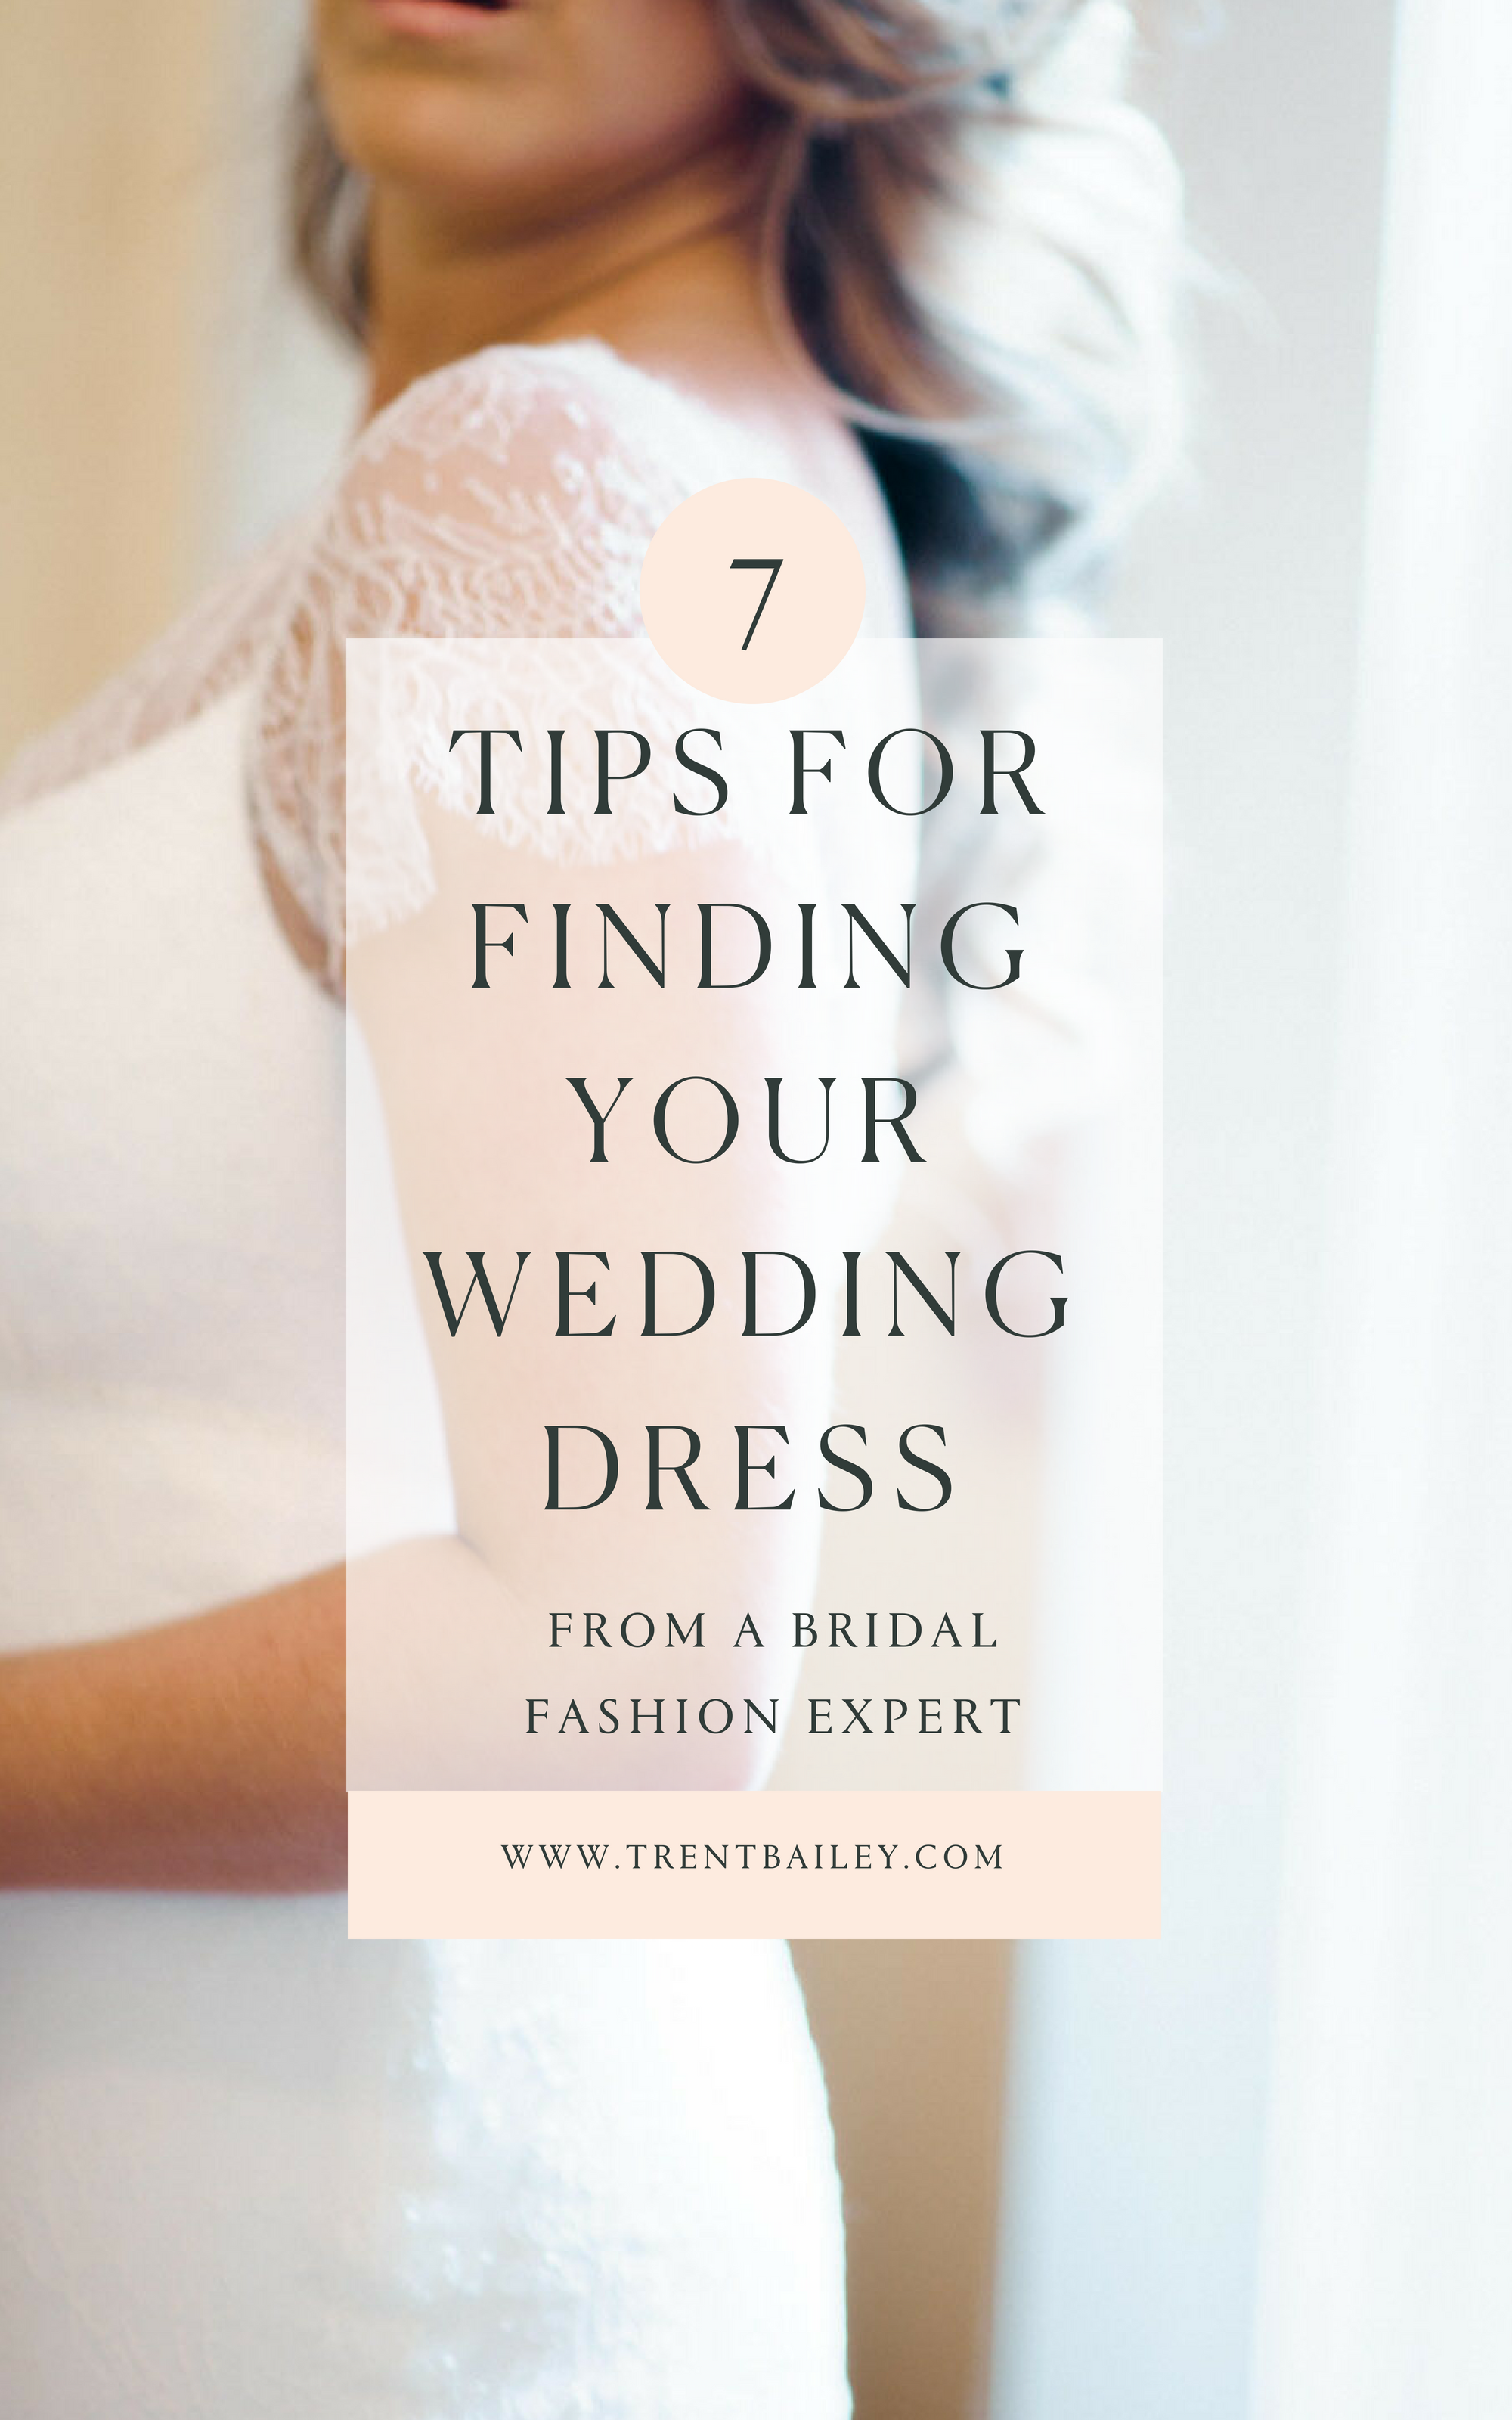 8 - 7 TIPS FOR FINDING YOUR WEDDING DRESS